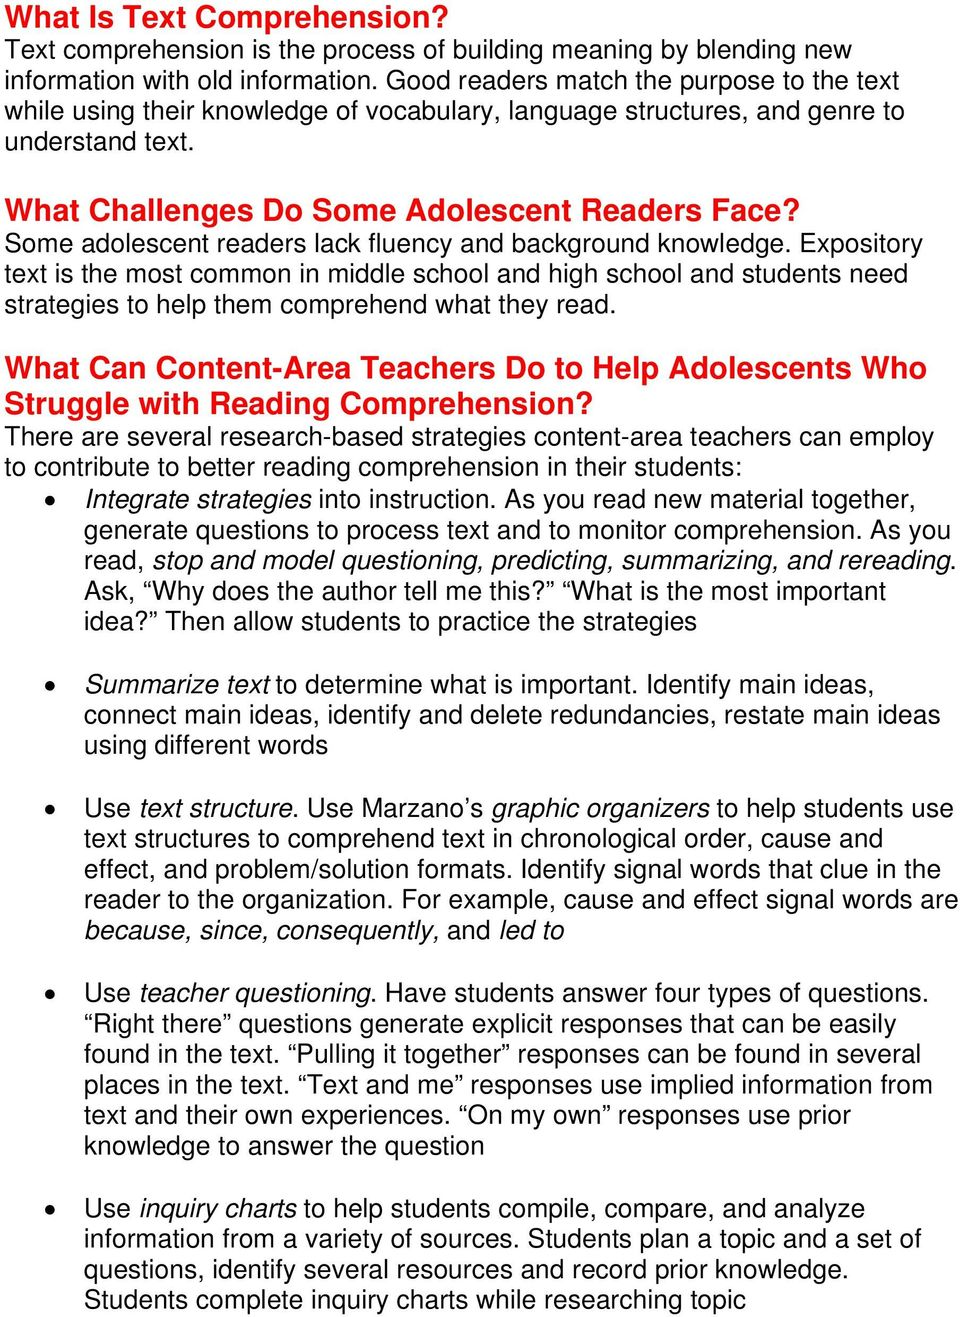 Some adolescent readers lack fluency and background knowledge. Expository text is the most common in middle school and high school and students need strategies to help them comprehend what they read.